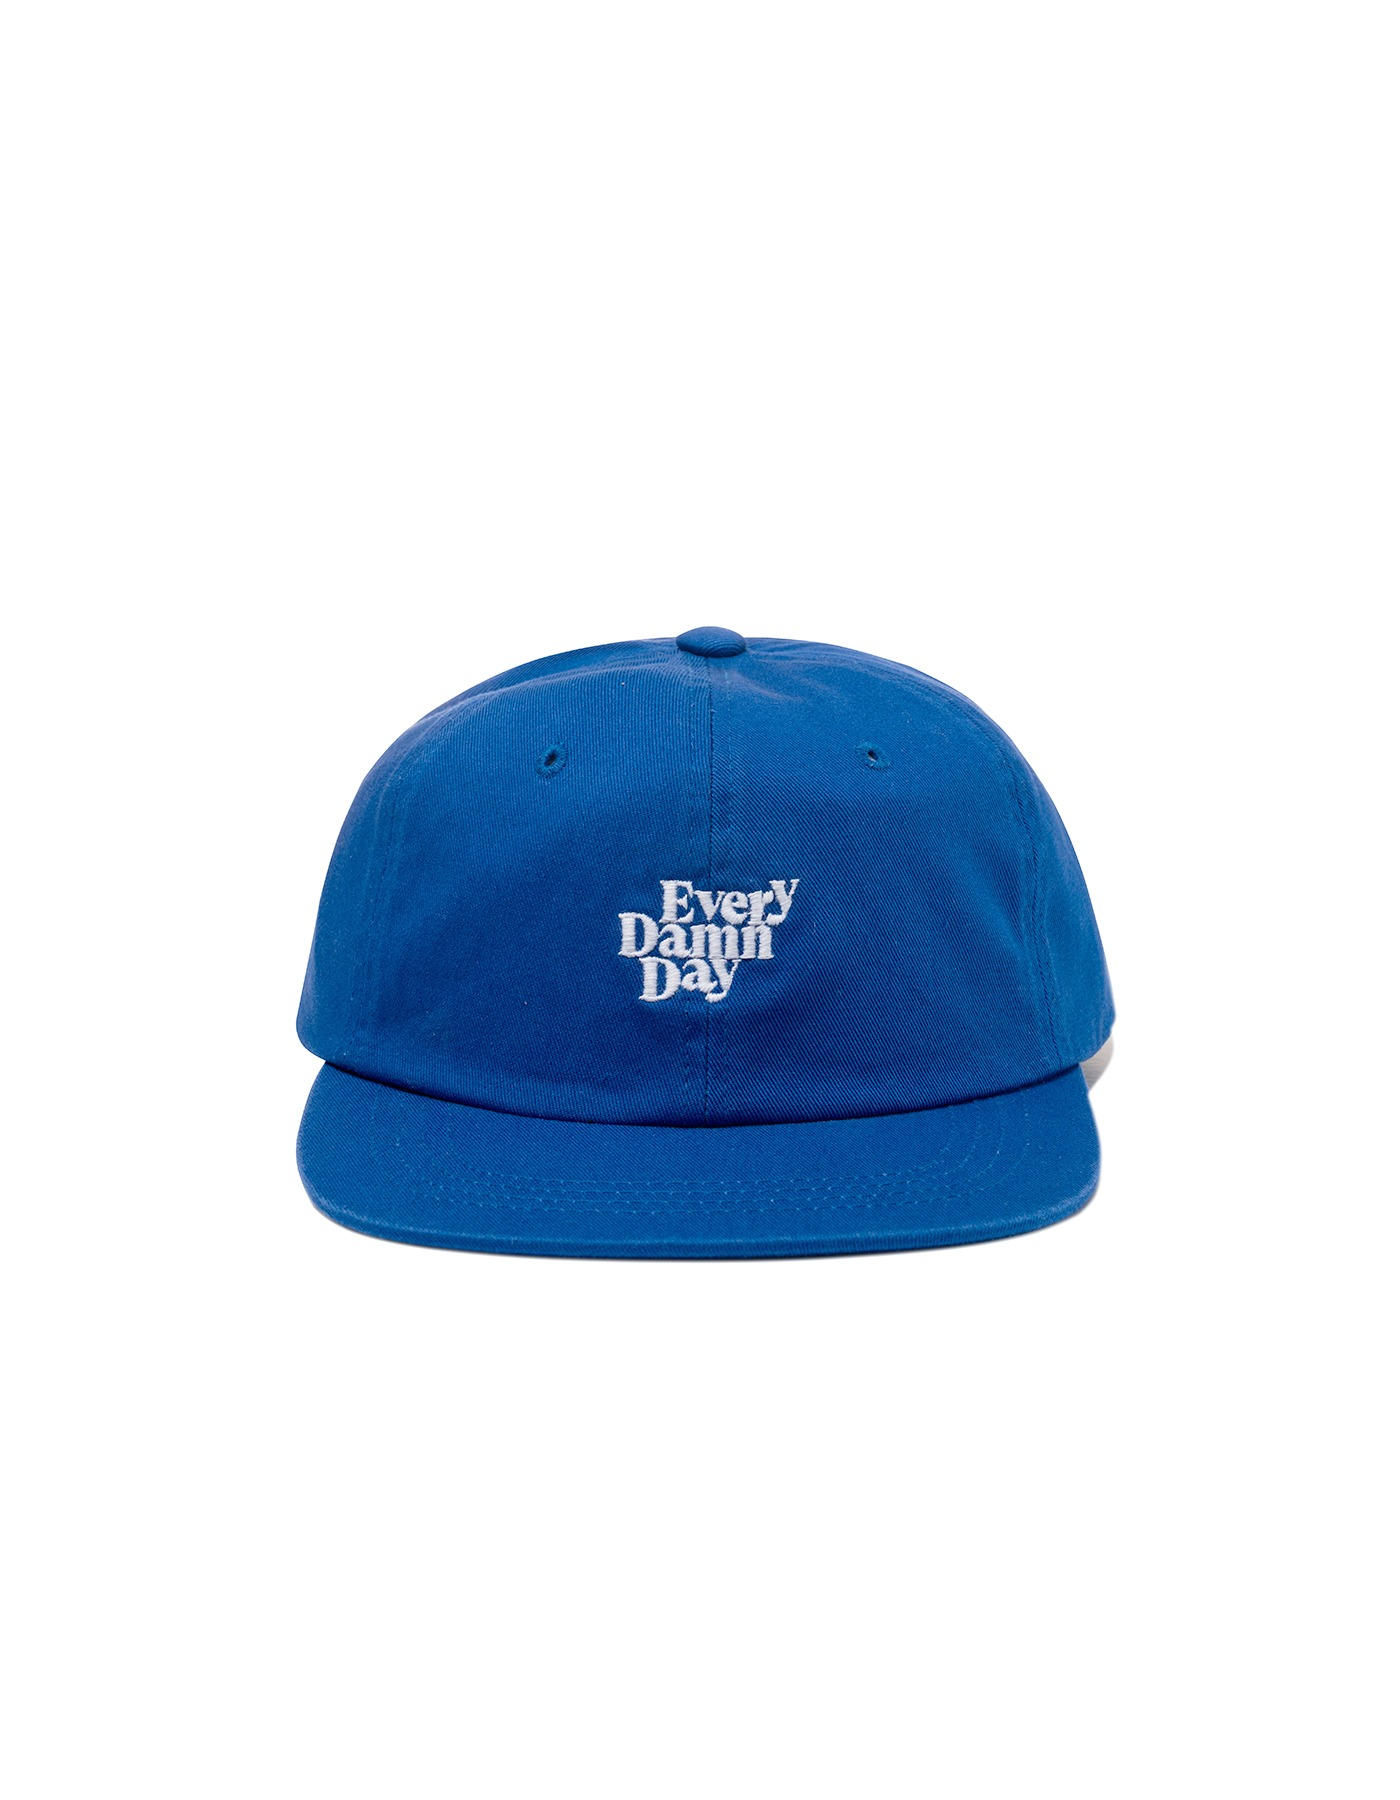 Every Damn Day Cap- Royal Blue